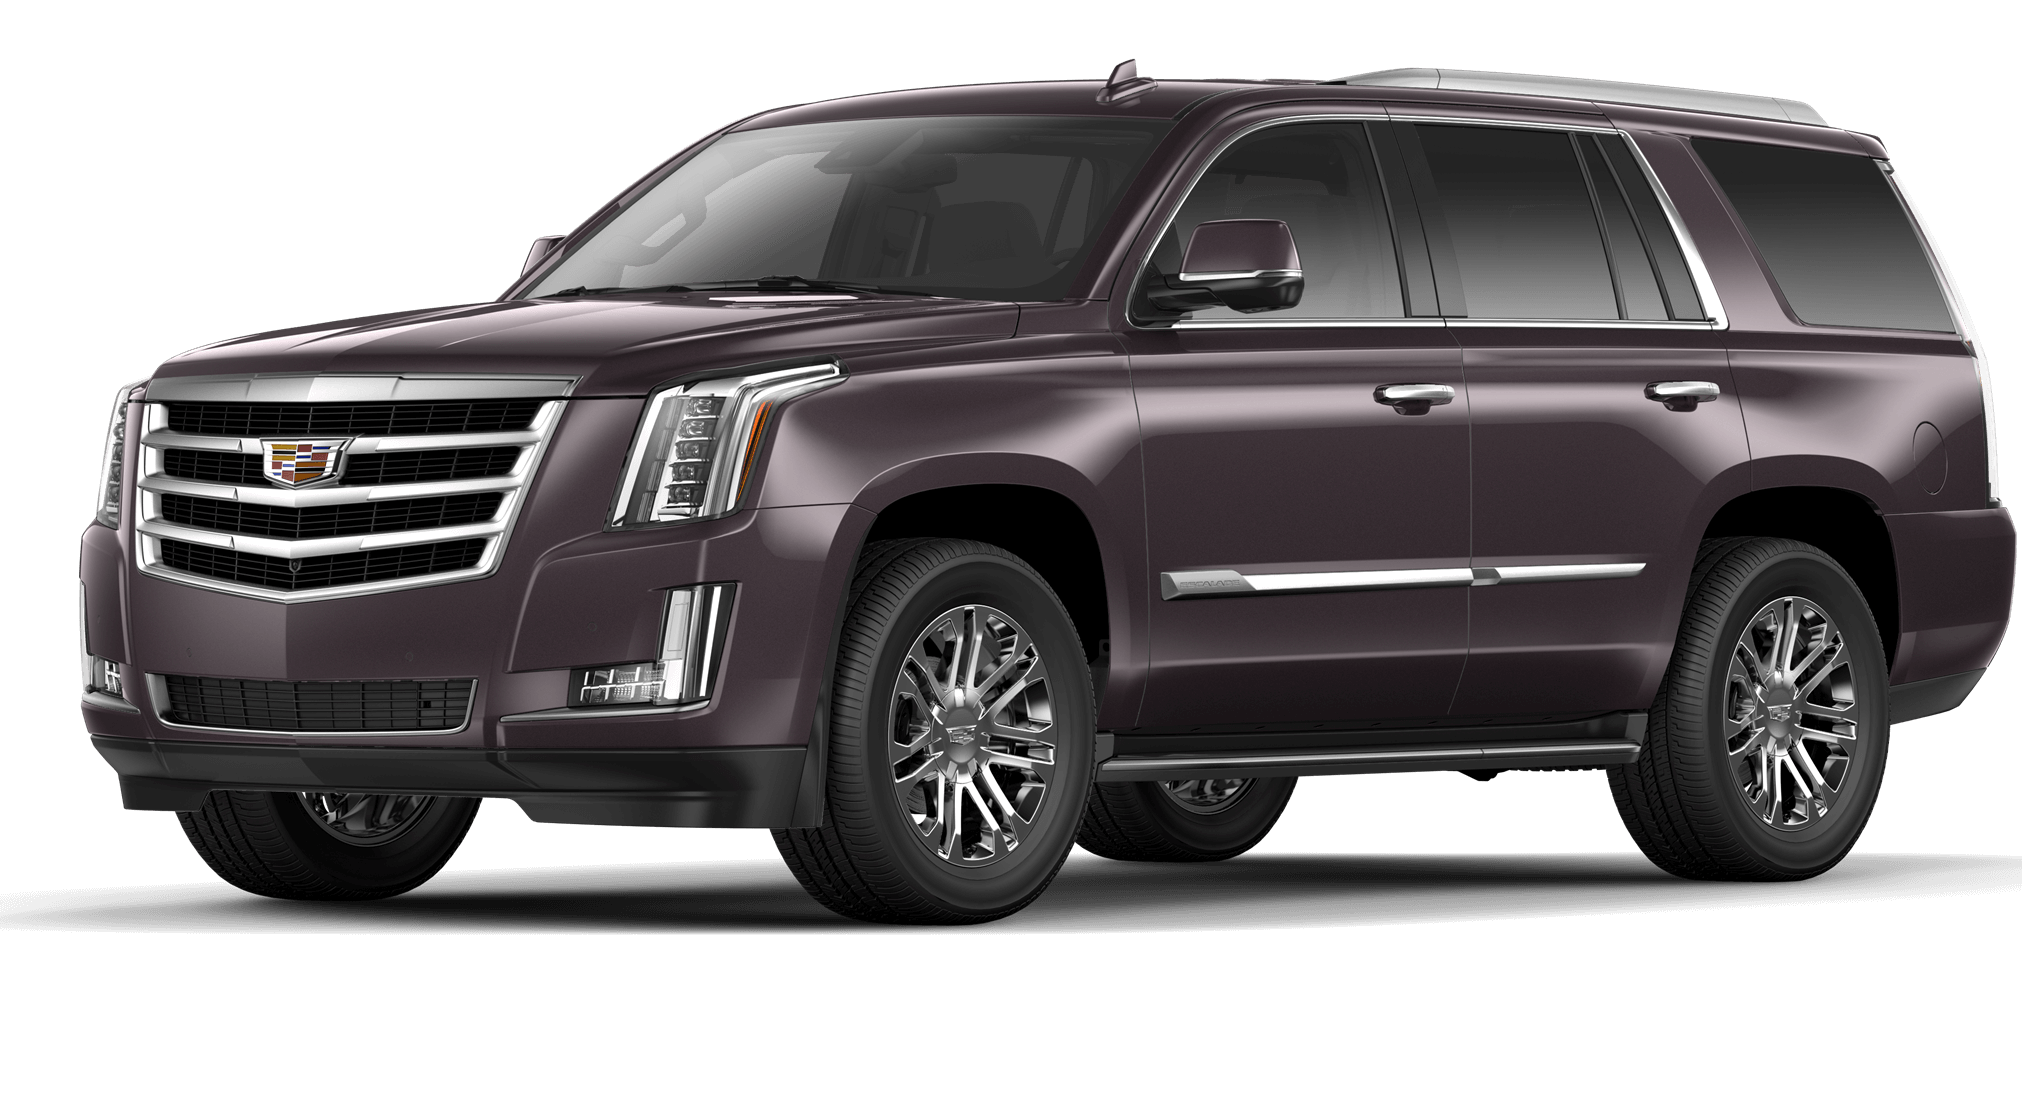 2017 cadillac escalade winnipeg escalade details specs gauthier. Black Bedroom Furniture Sets. Home Design Ideas